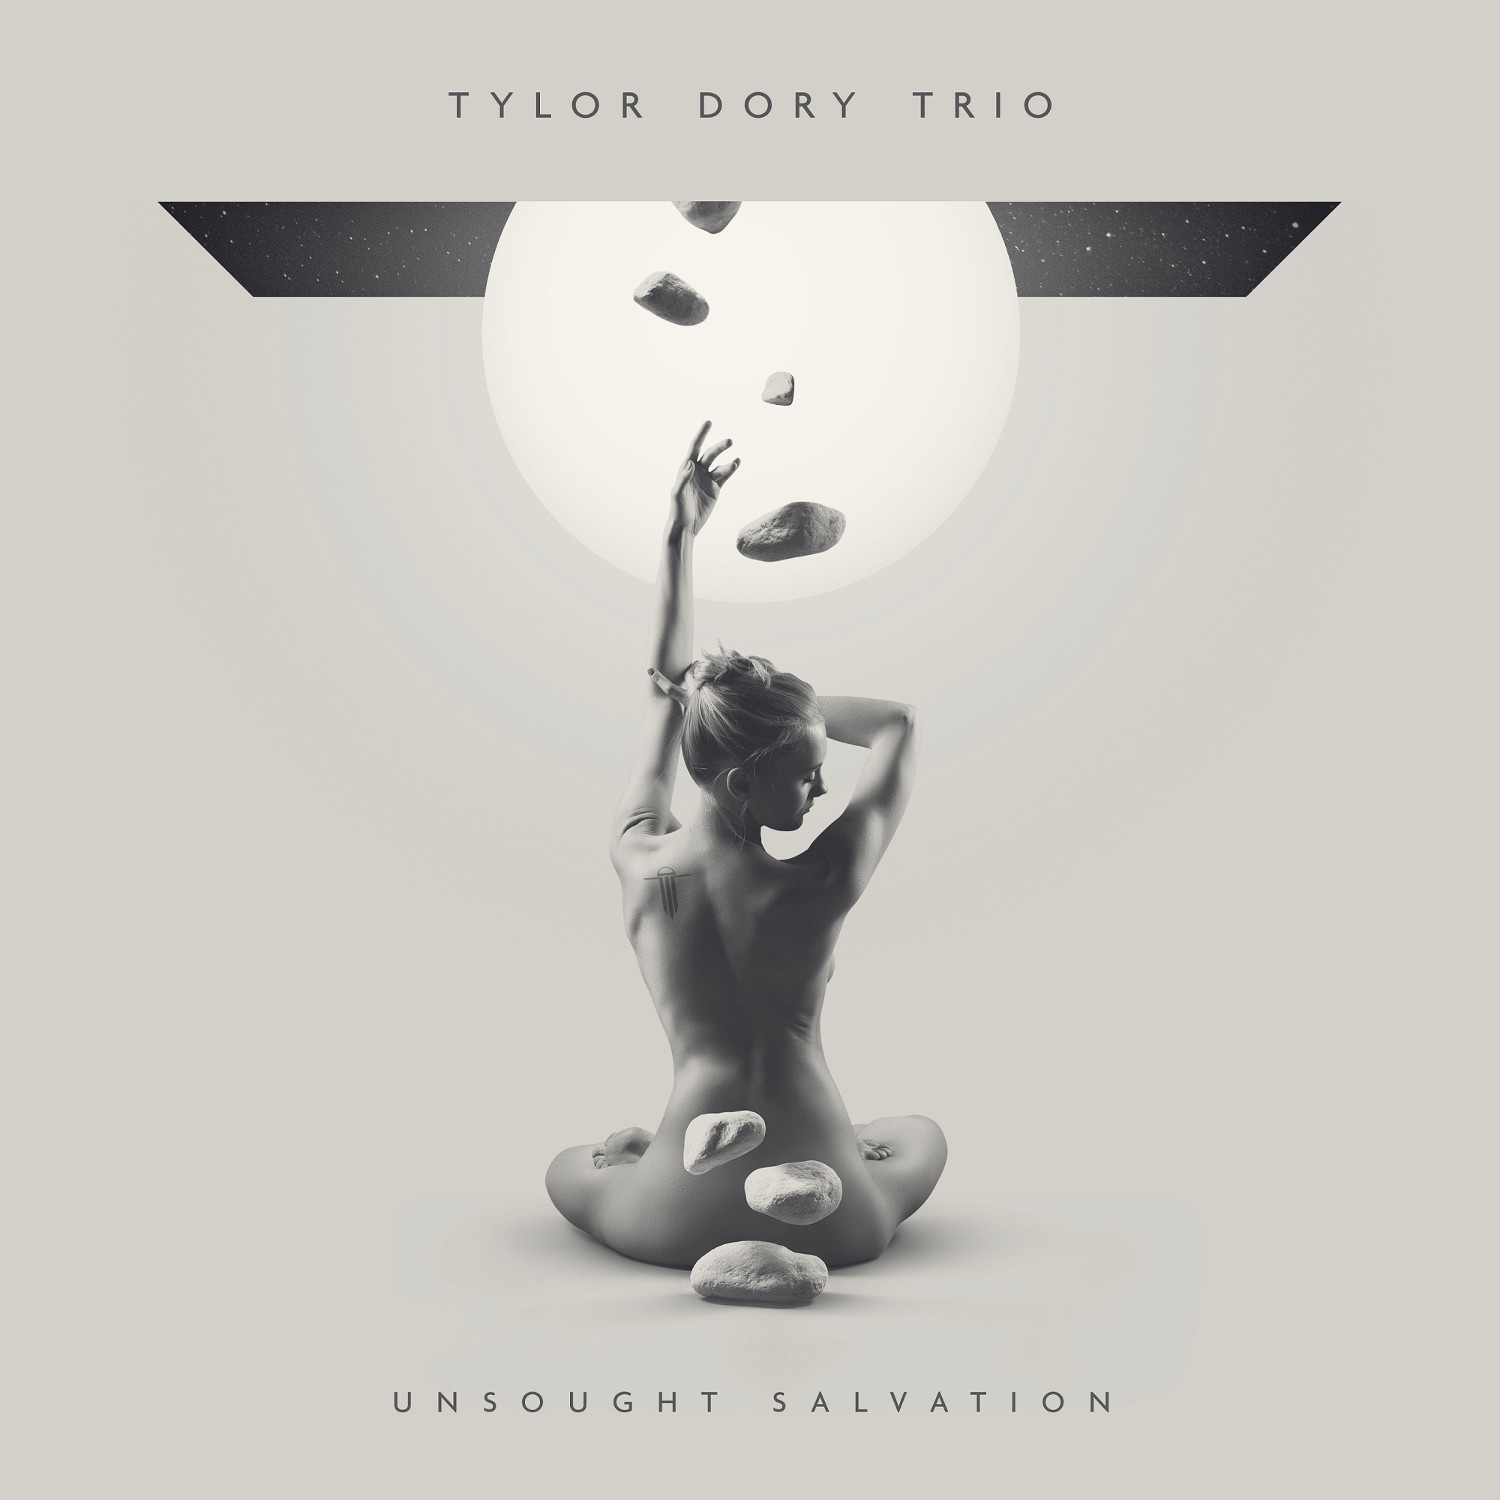 Tylor Dory Trio — Unsought Salvation